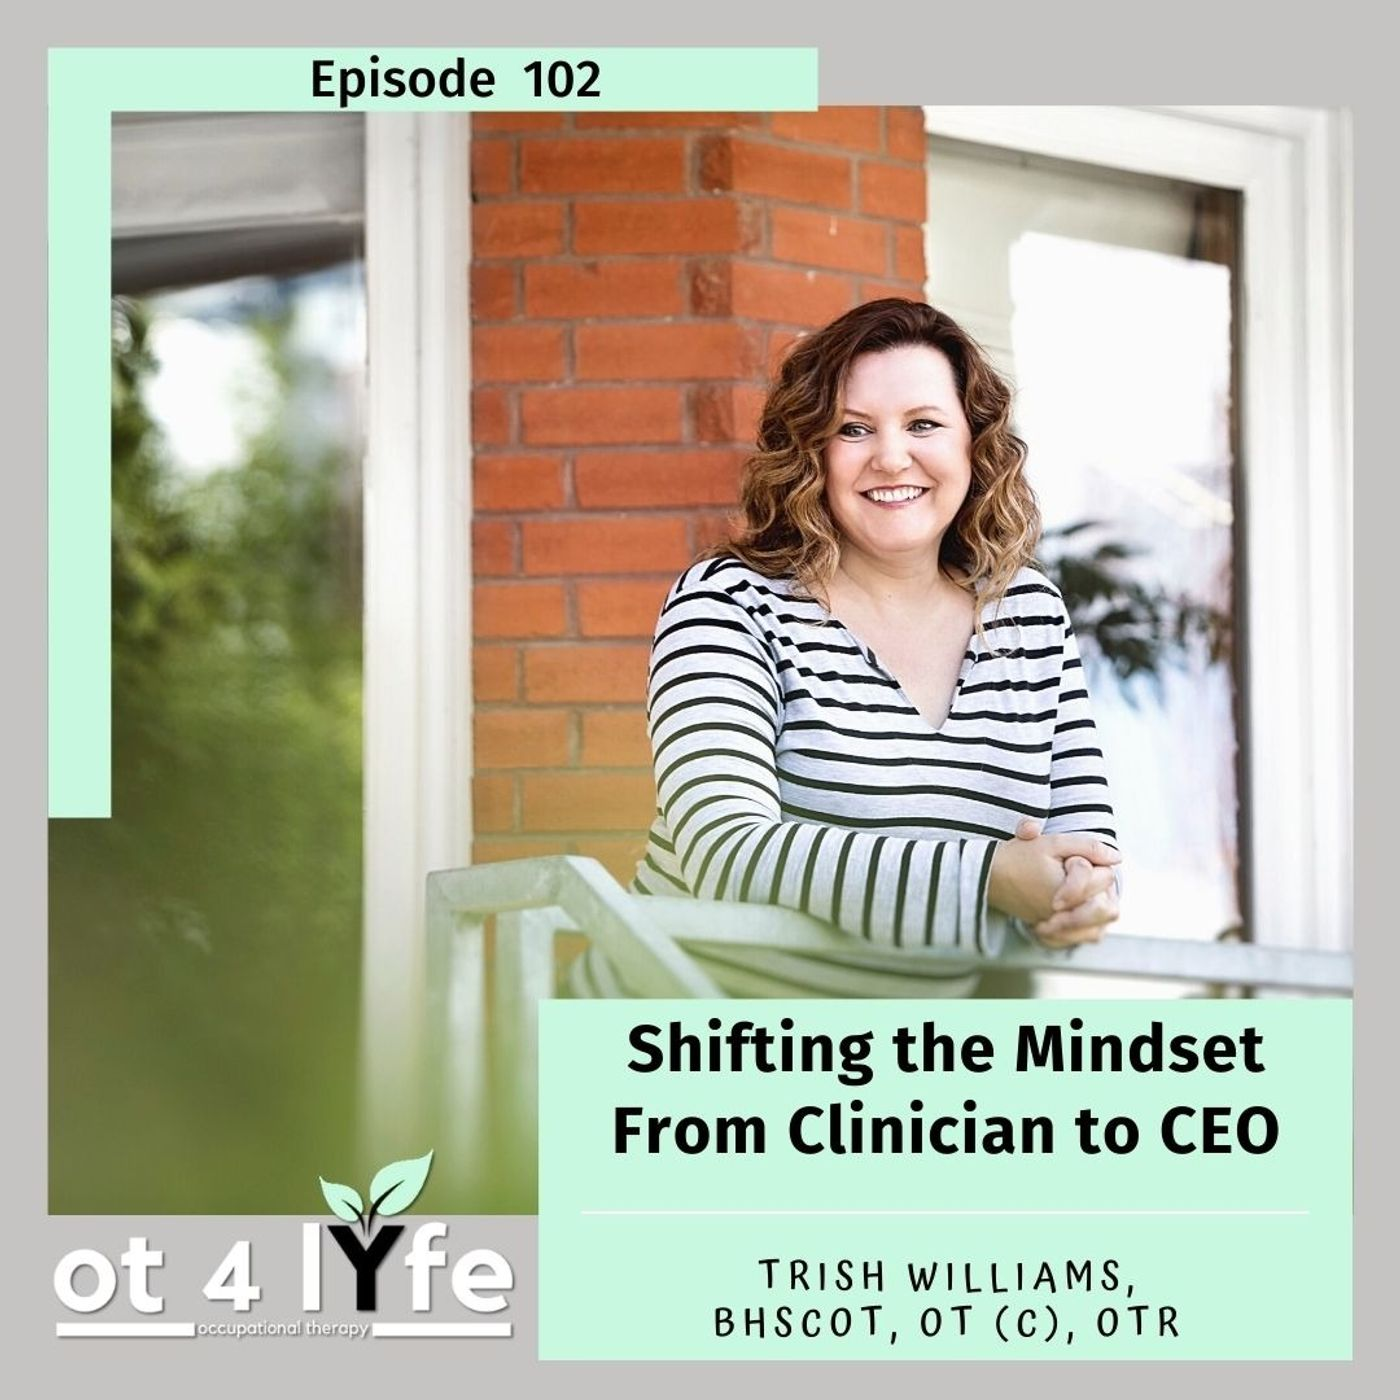 Shifting the Mindset From Clinician to CEO